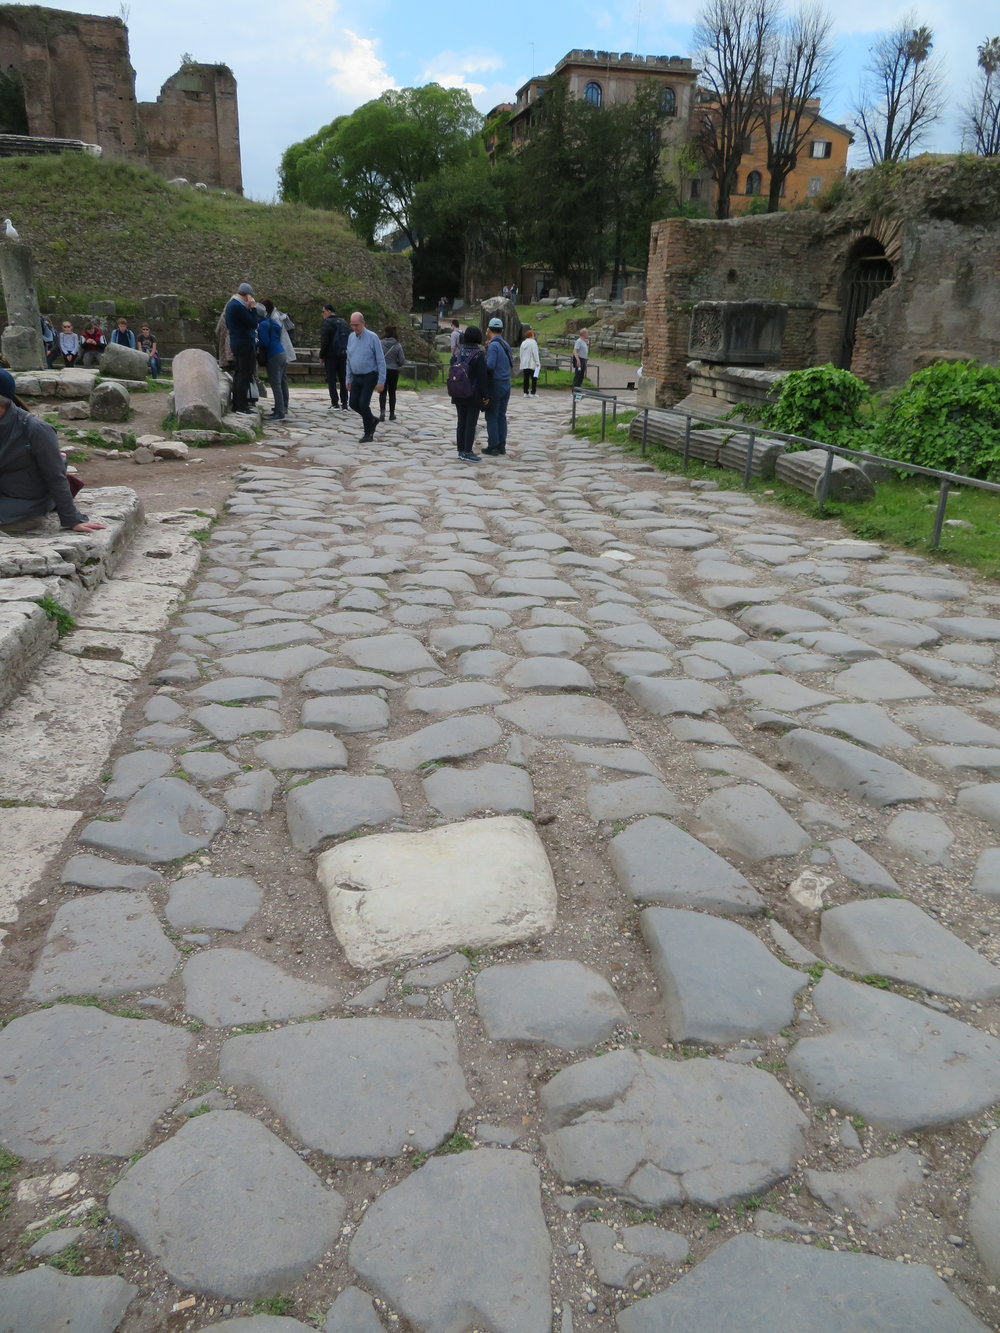 The Sacra Via … an original Roman road trod by millions in the past two thousand years+. I swear you can feel the footsteps of those who have passed before us.